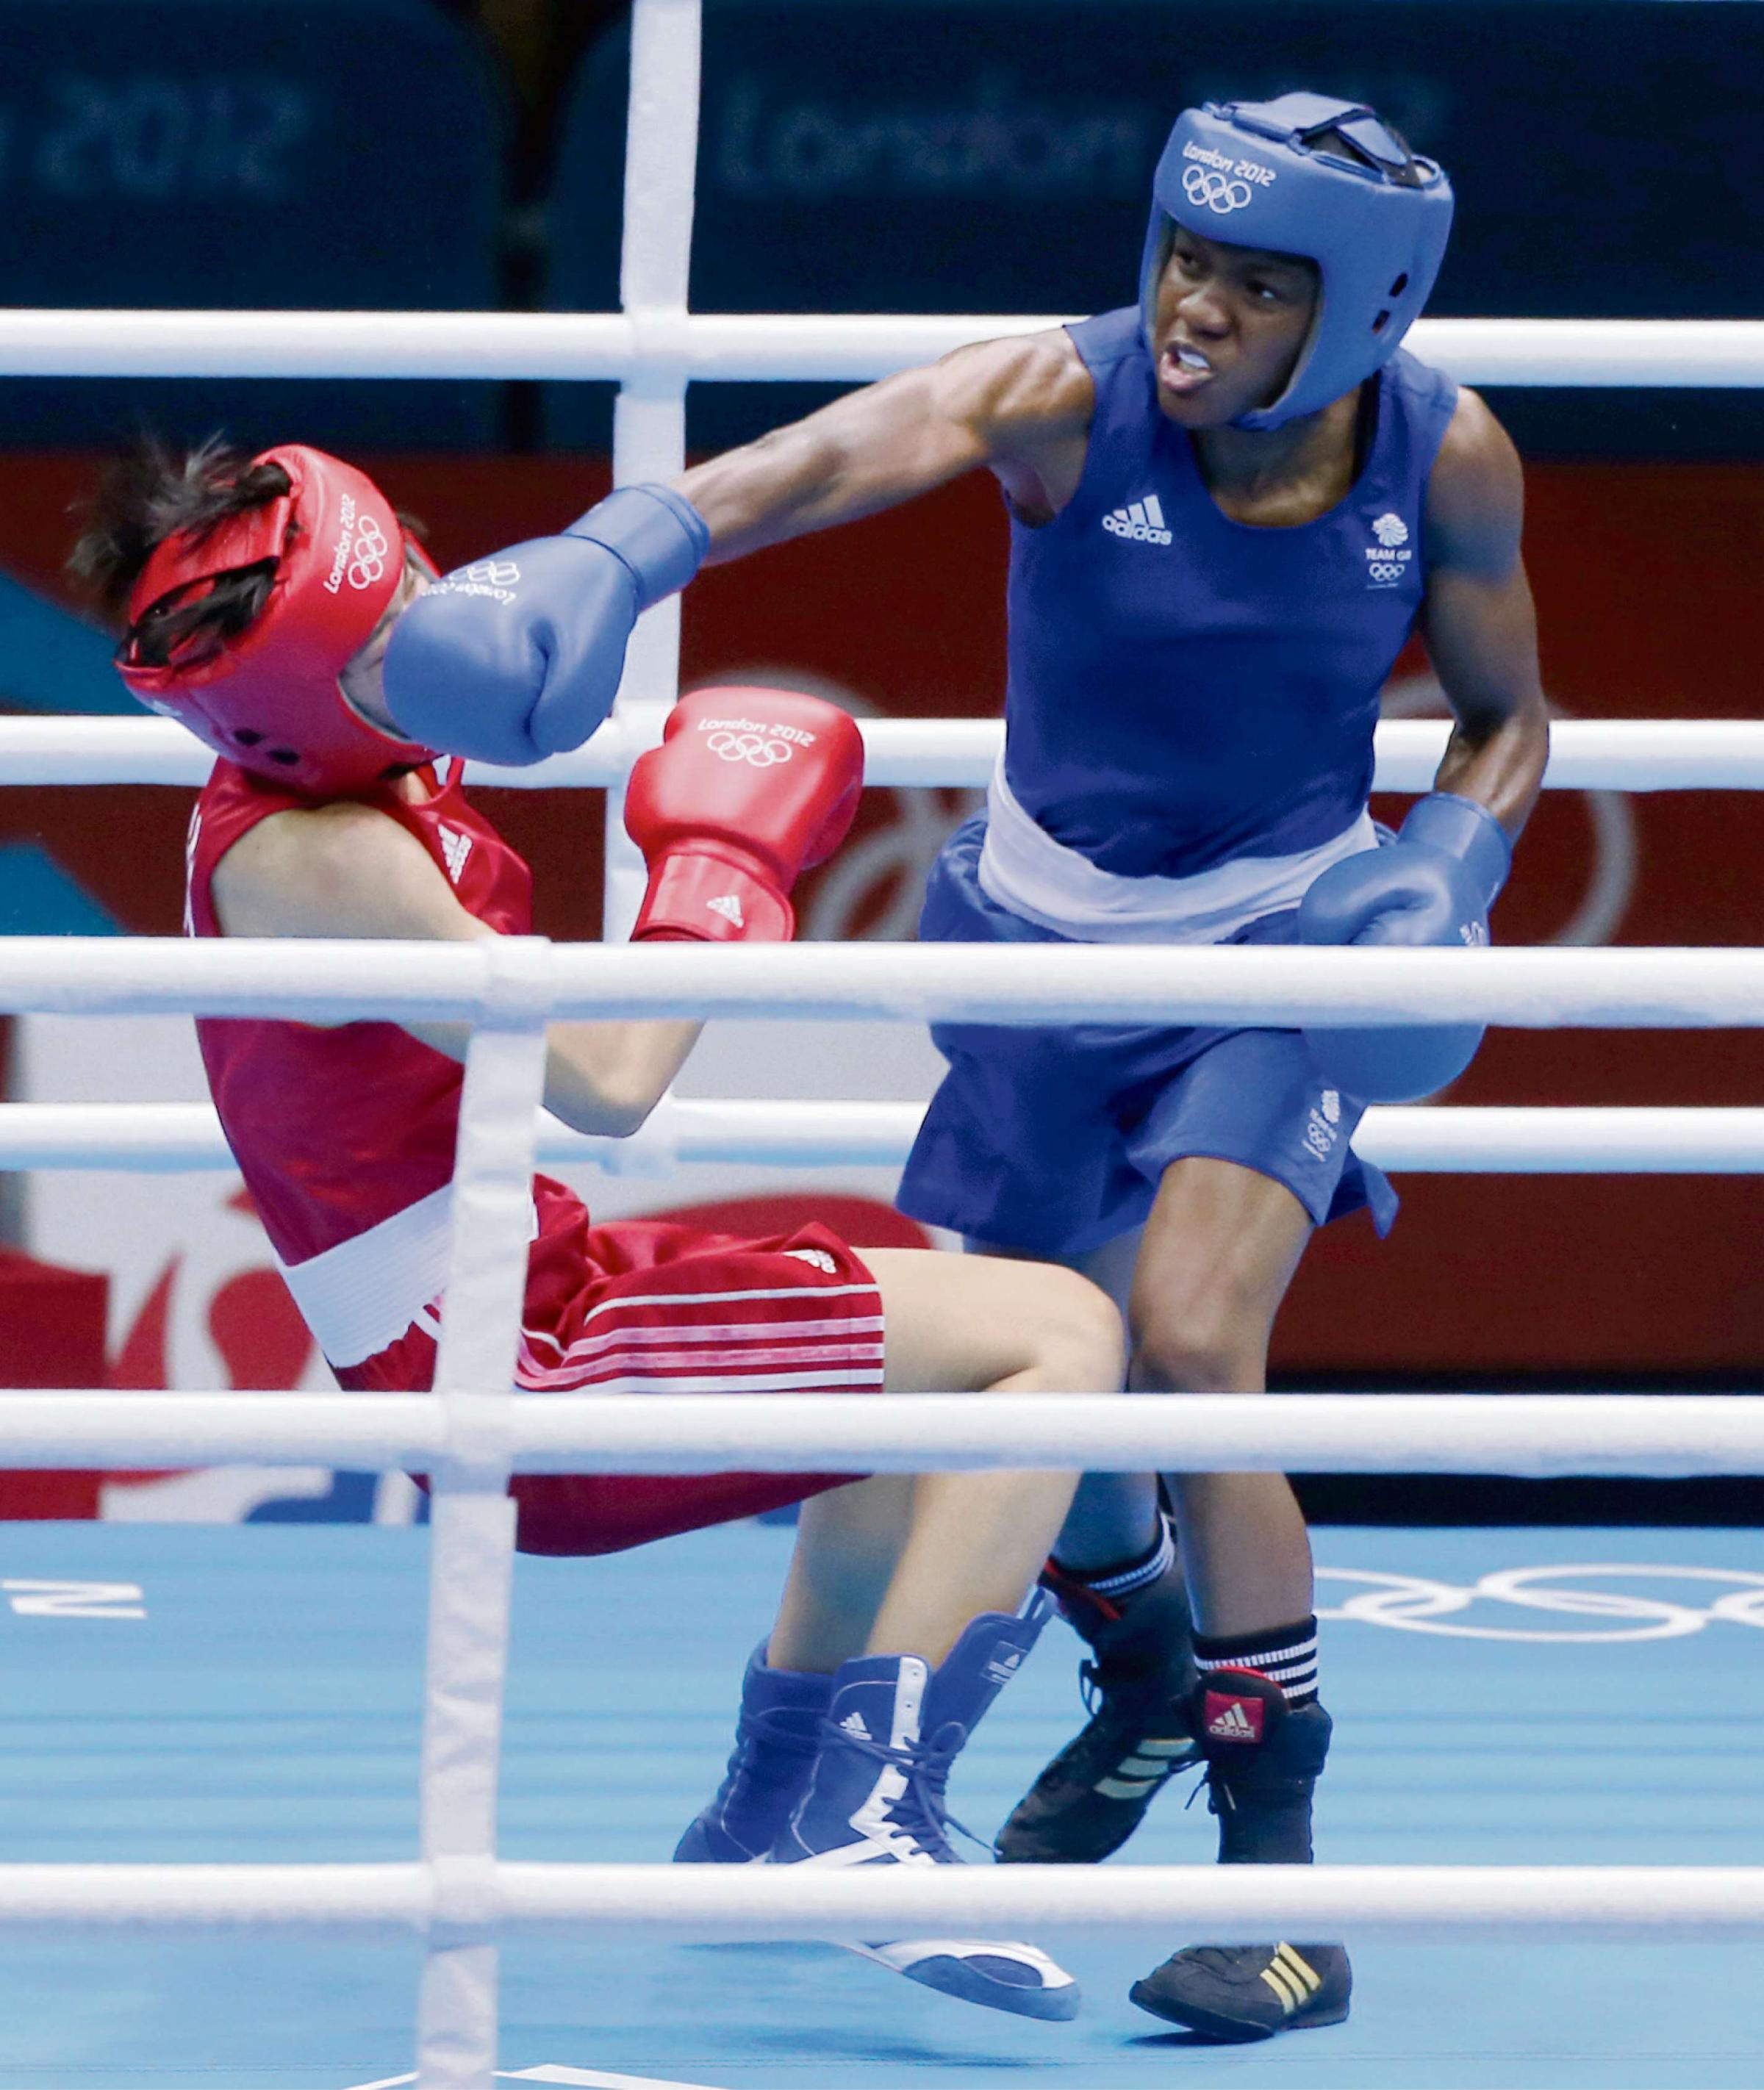 Nicola Adams knocks down Canacan Ren of China on her way to winning Olympic gold